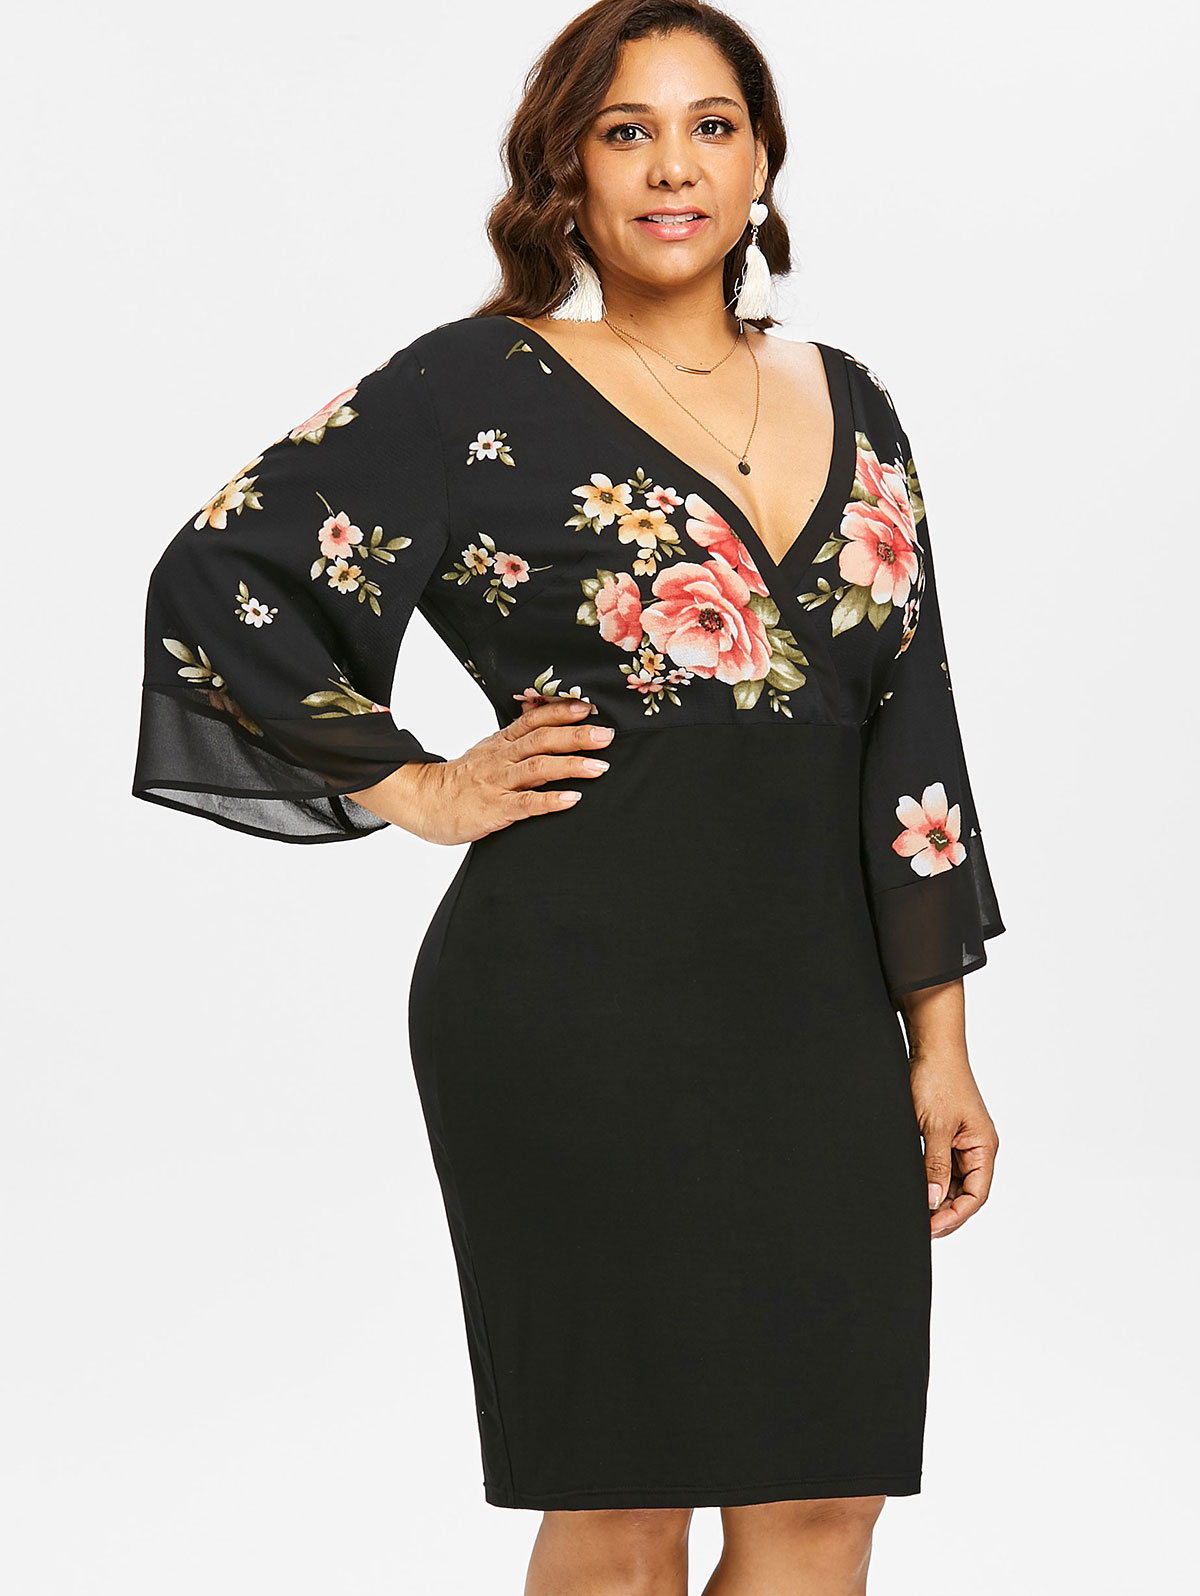 US $14.58 39% OFF|Wipalo Plus Size Bell Sleeve Low Cut Floral Bodycon Dress  Women Harajuku 3/4 Sleeve Summer Dresses Party OL Dress Vestidos 5XL-in ...